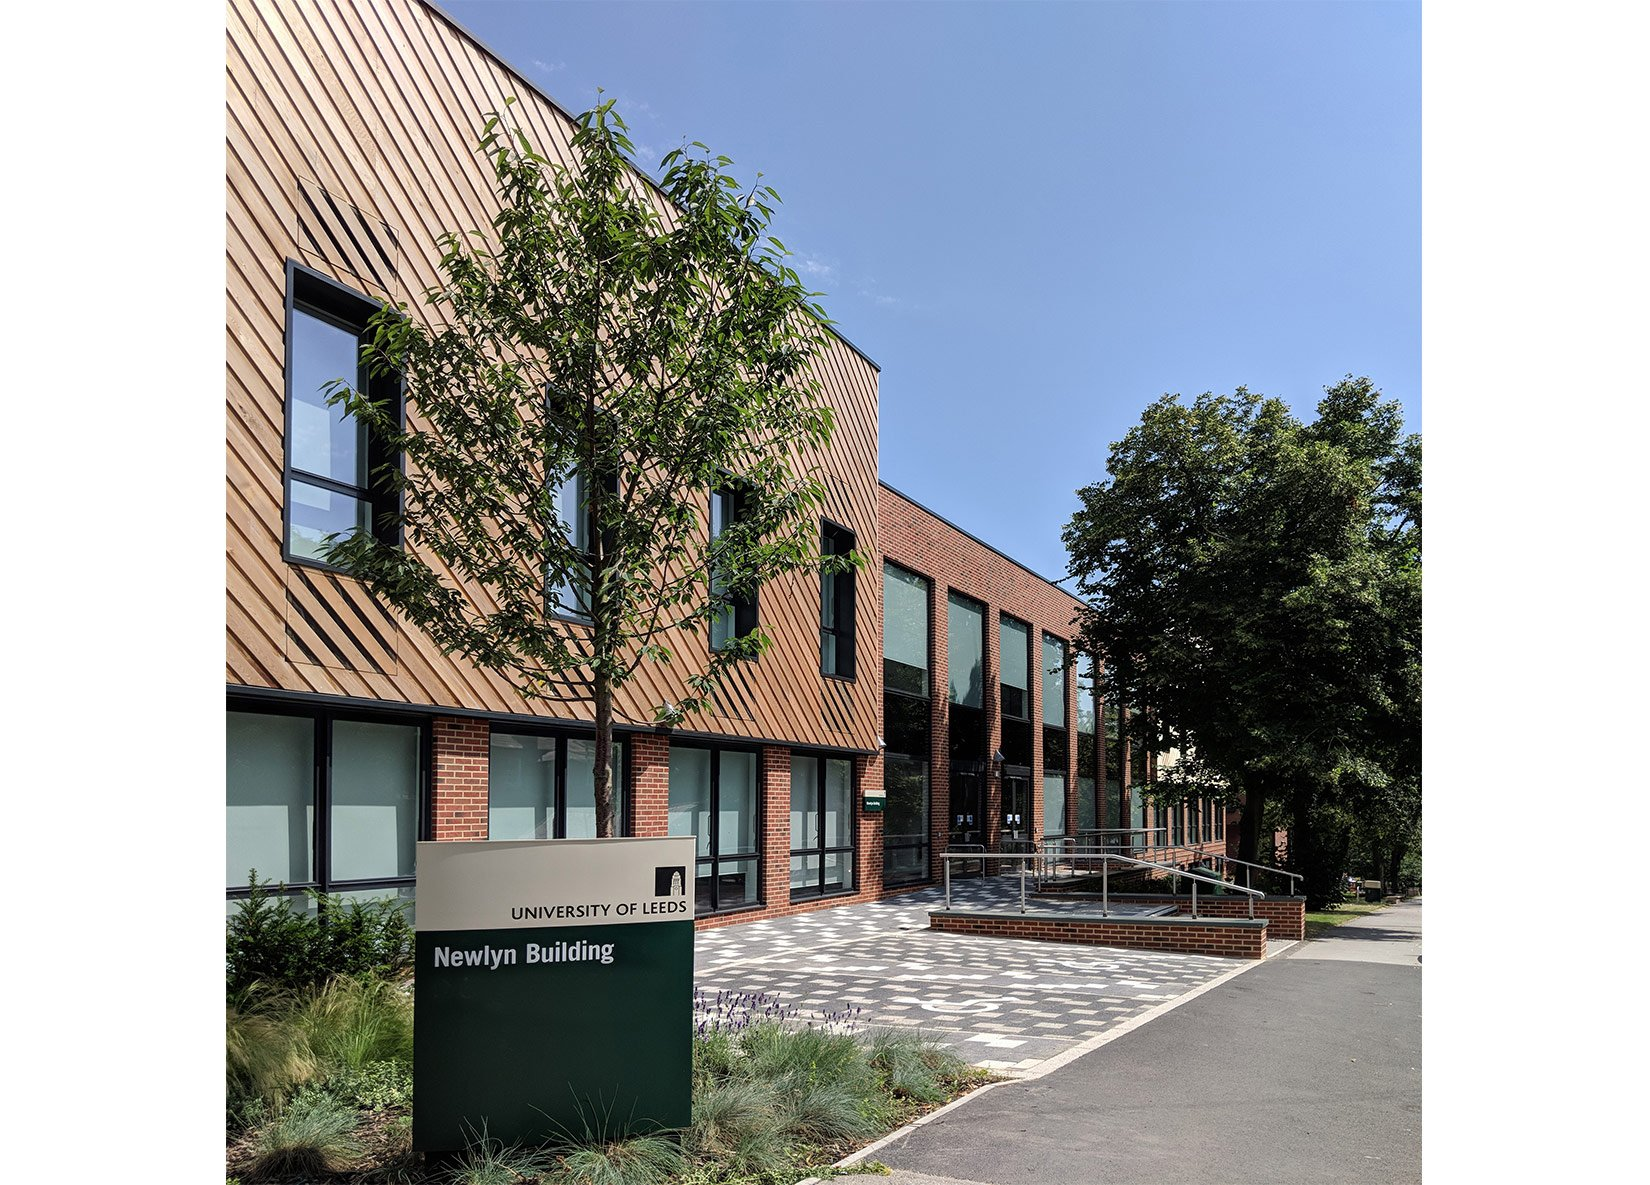 Newlyn Building, University of Leeds, landscaping and approach to the building